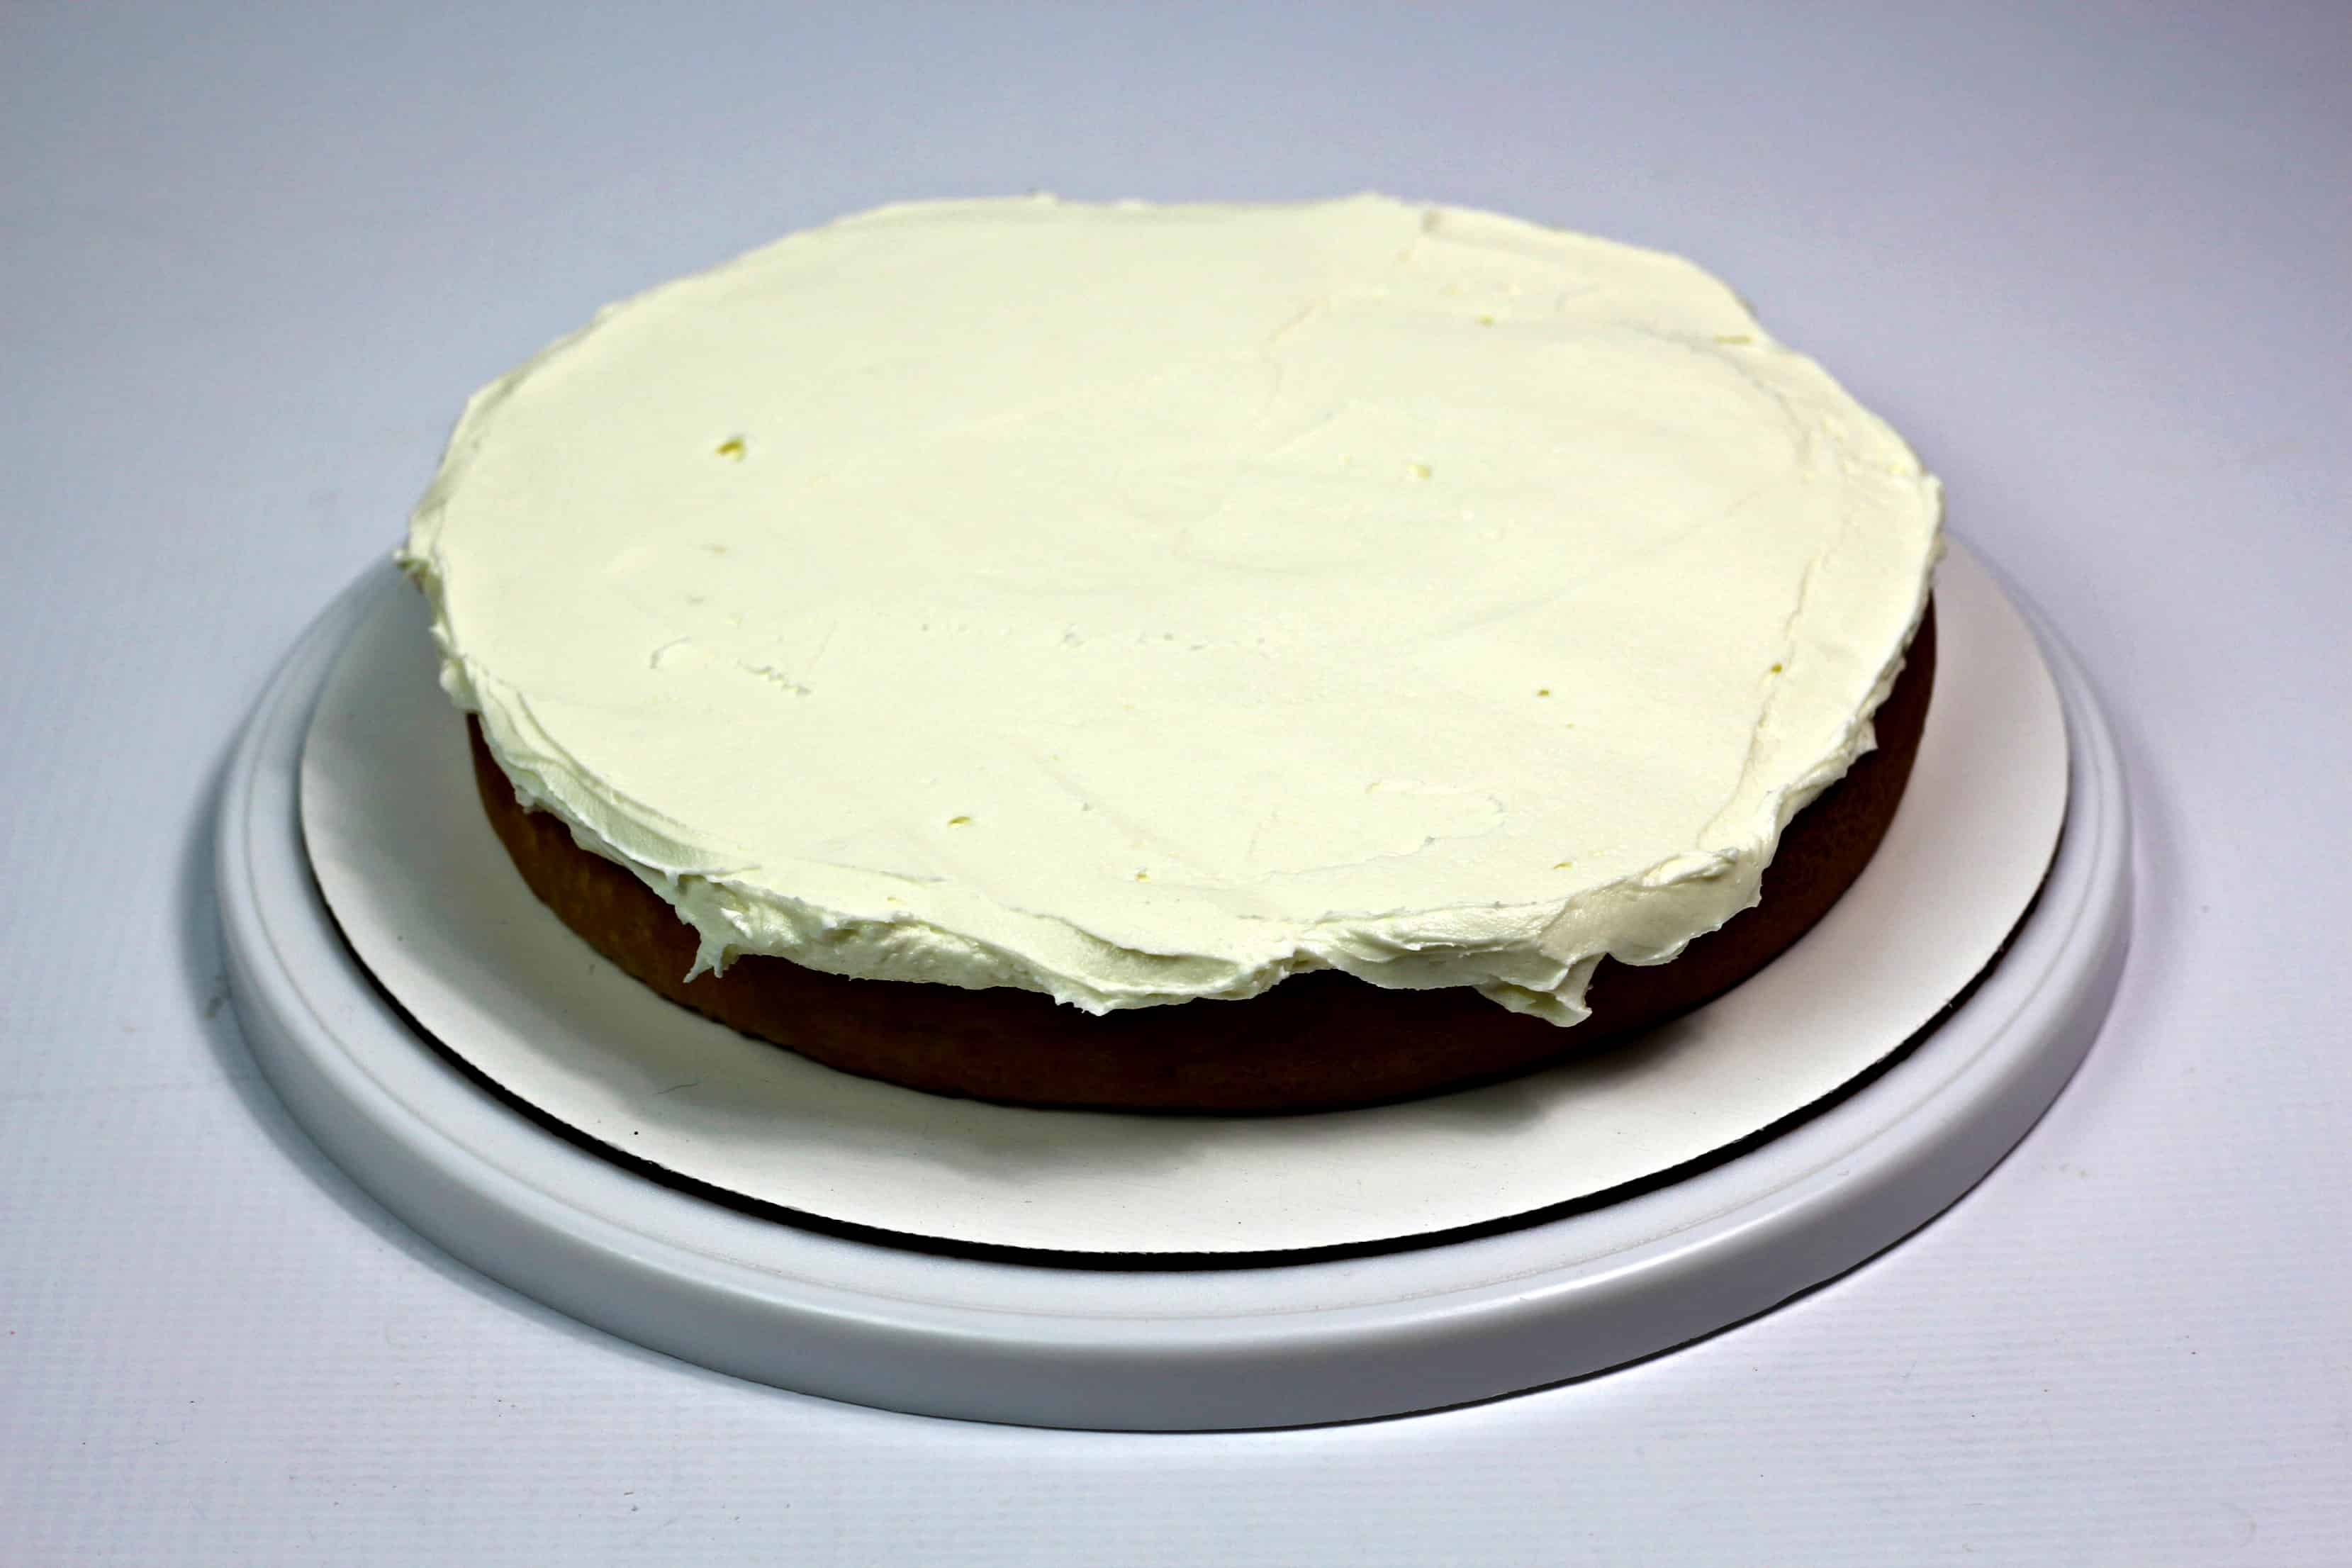 frosted cake with white icing